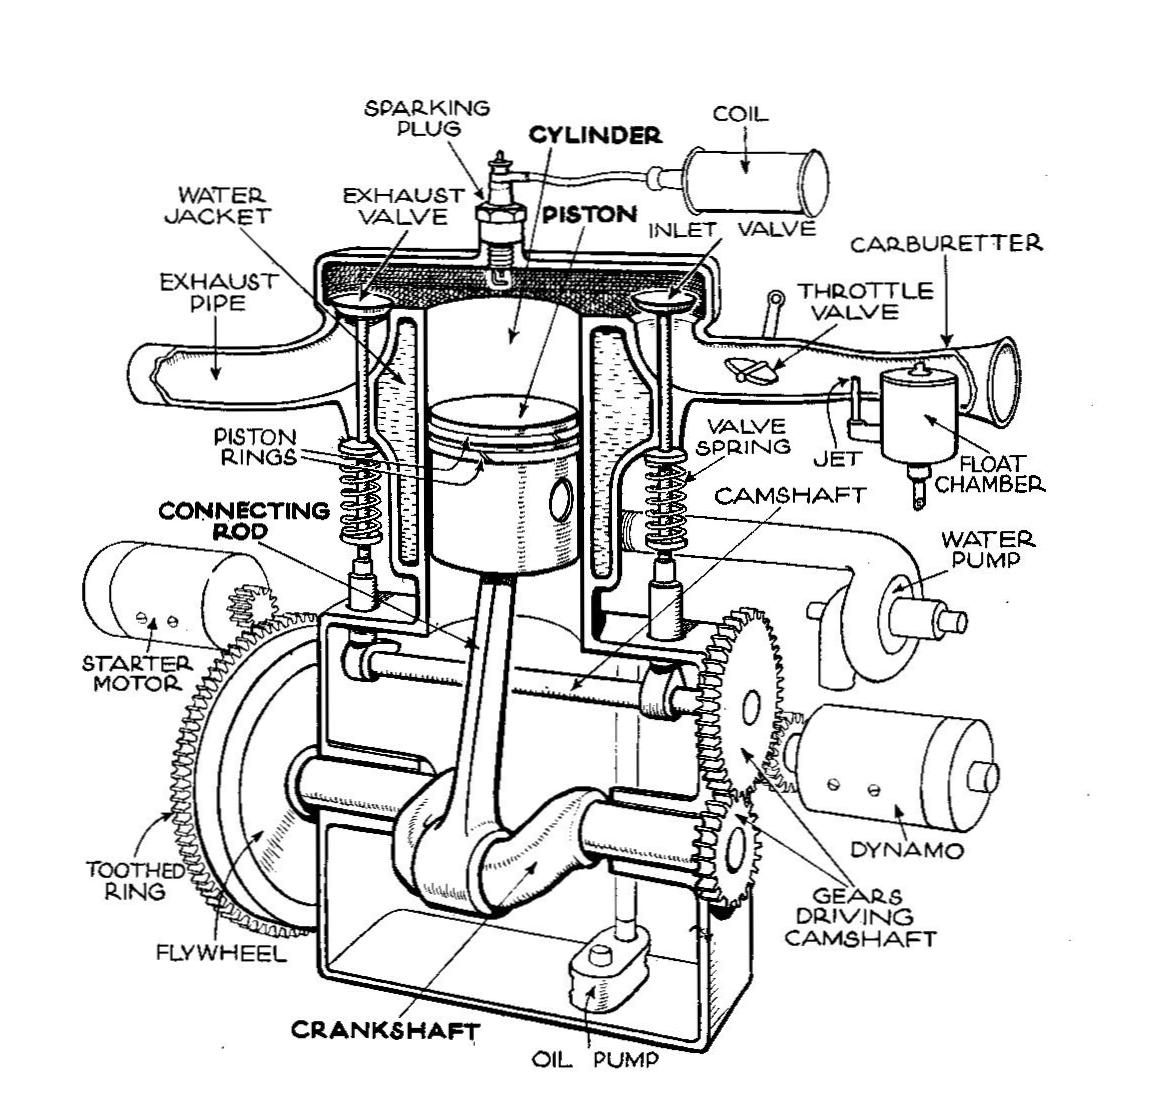 Flathead Engine Wikipedia 2002 Pontiac 3 4 Cooling Diagram